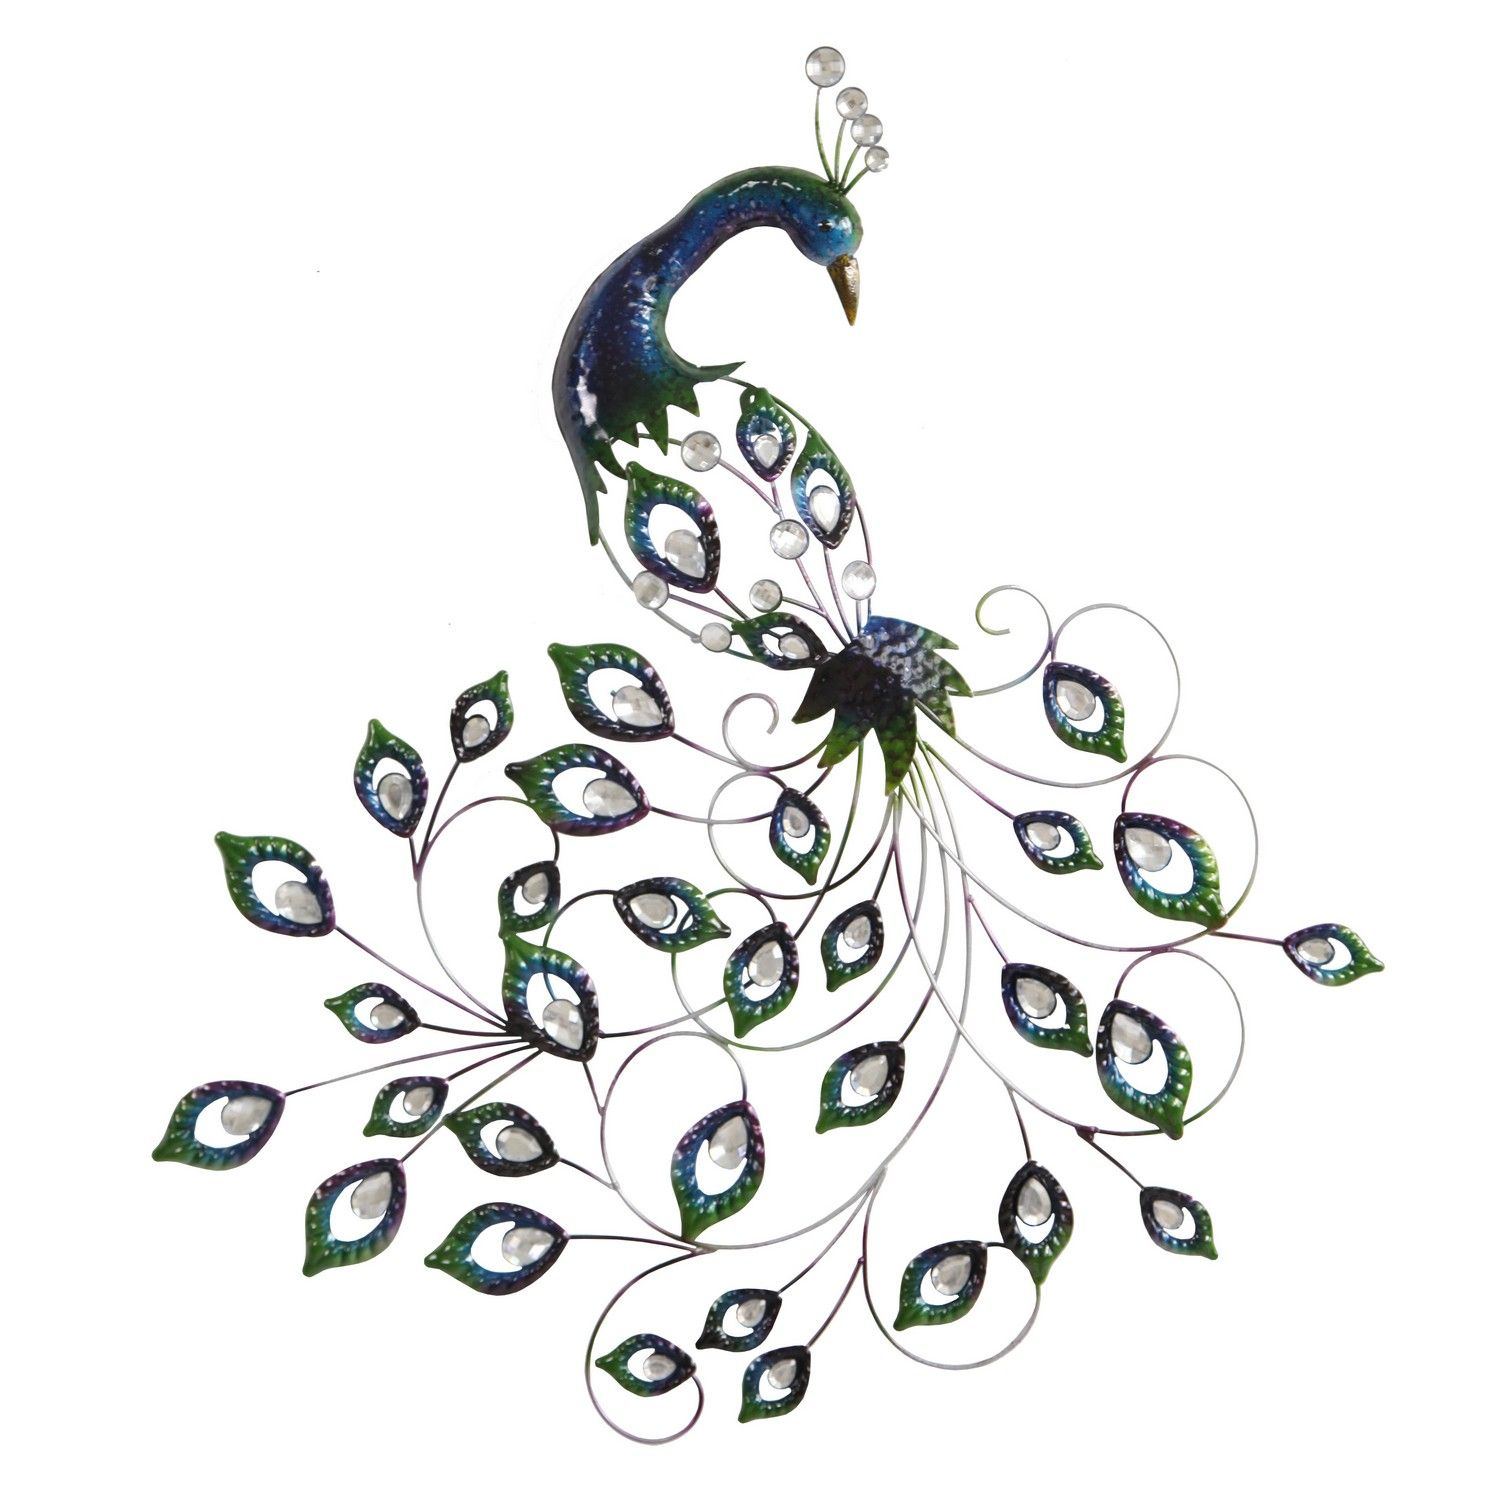 A decorative metal wall art peacock with teardrop shape jewels in the peacock feathers this